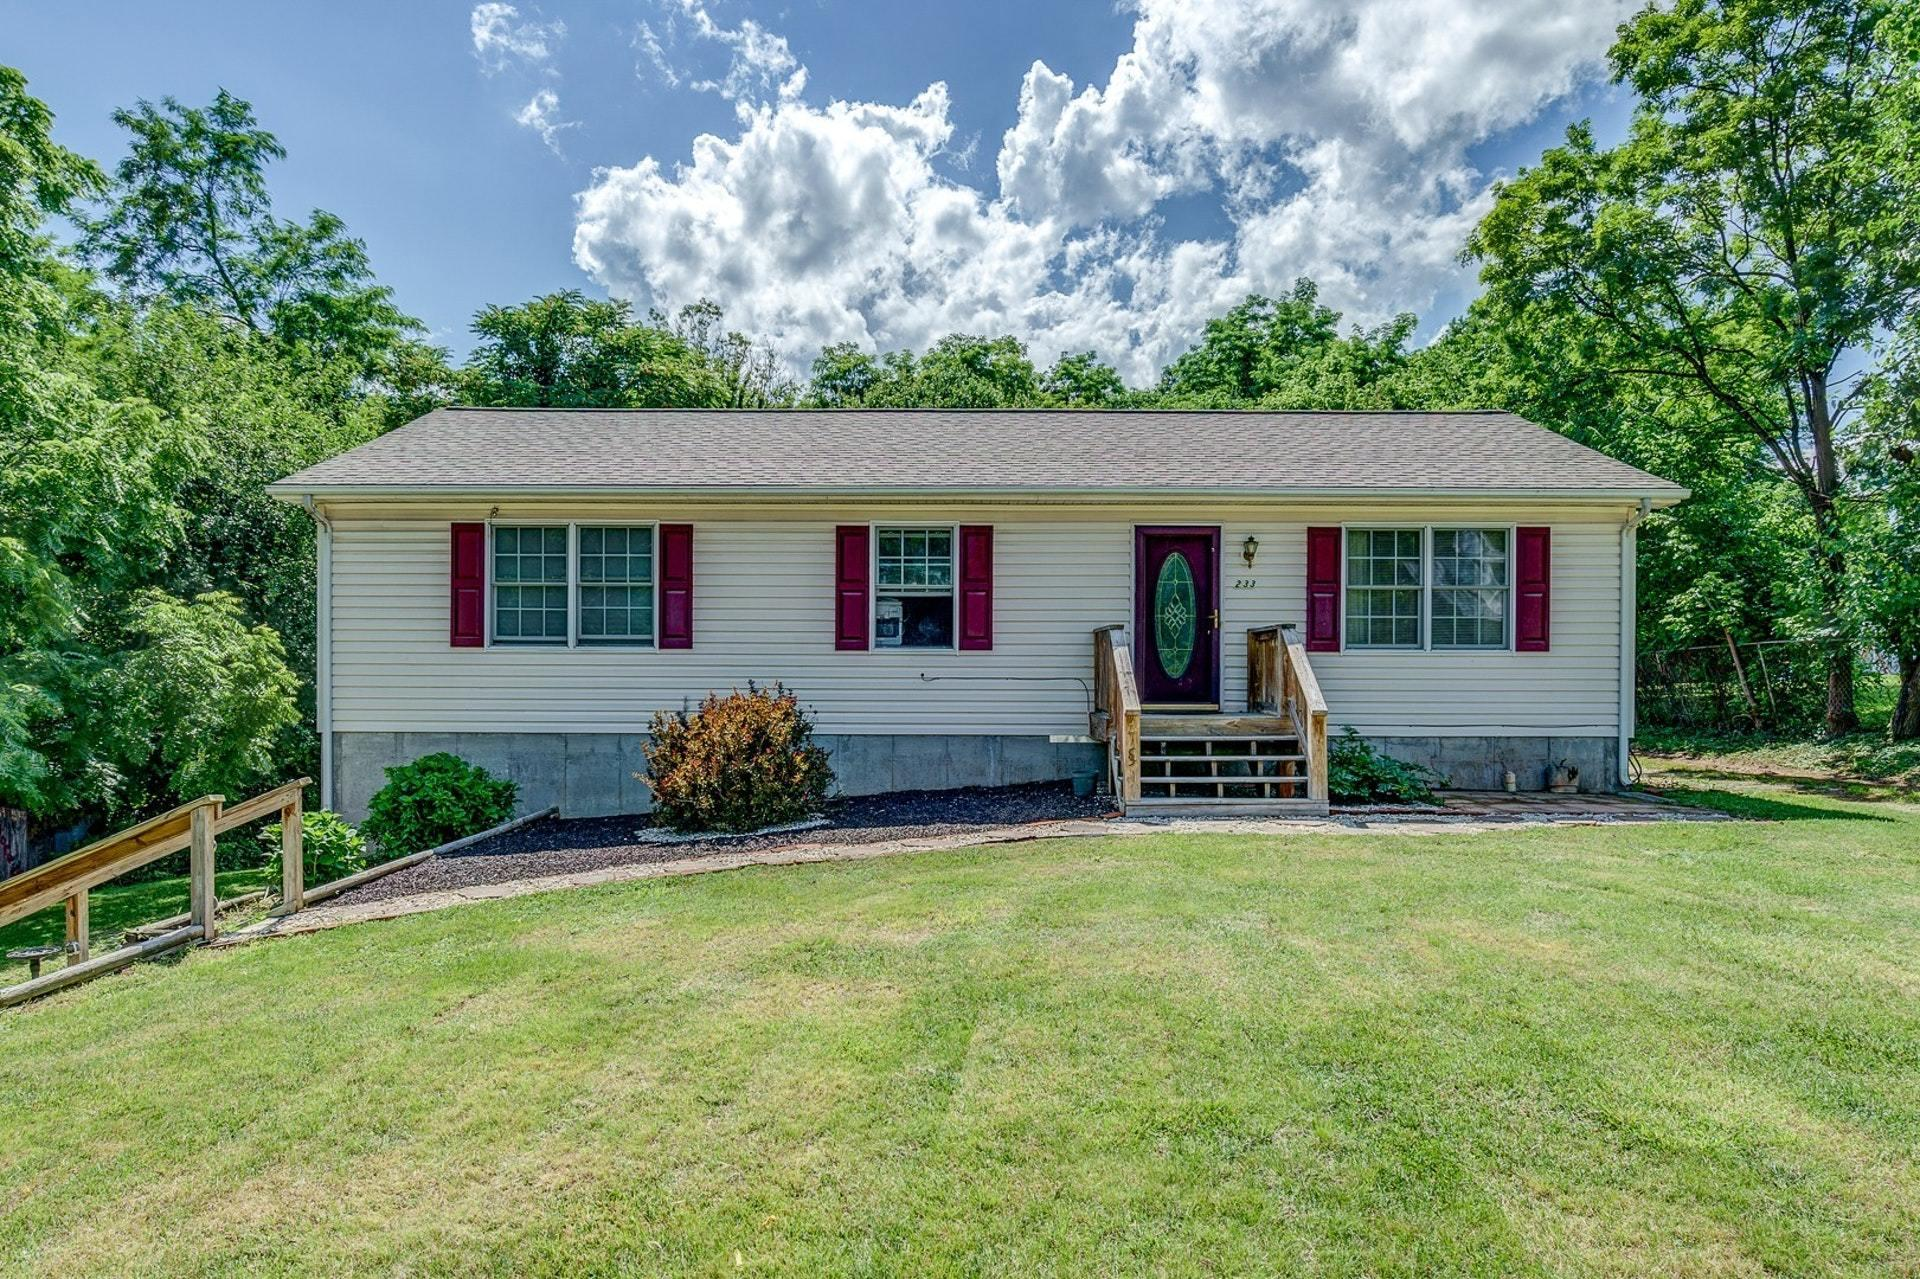 Residential for Sale at 233 Ward St Salem, Virginia 24153 United States